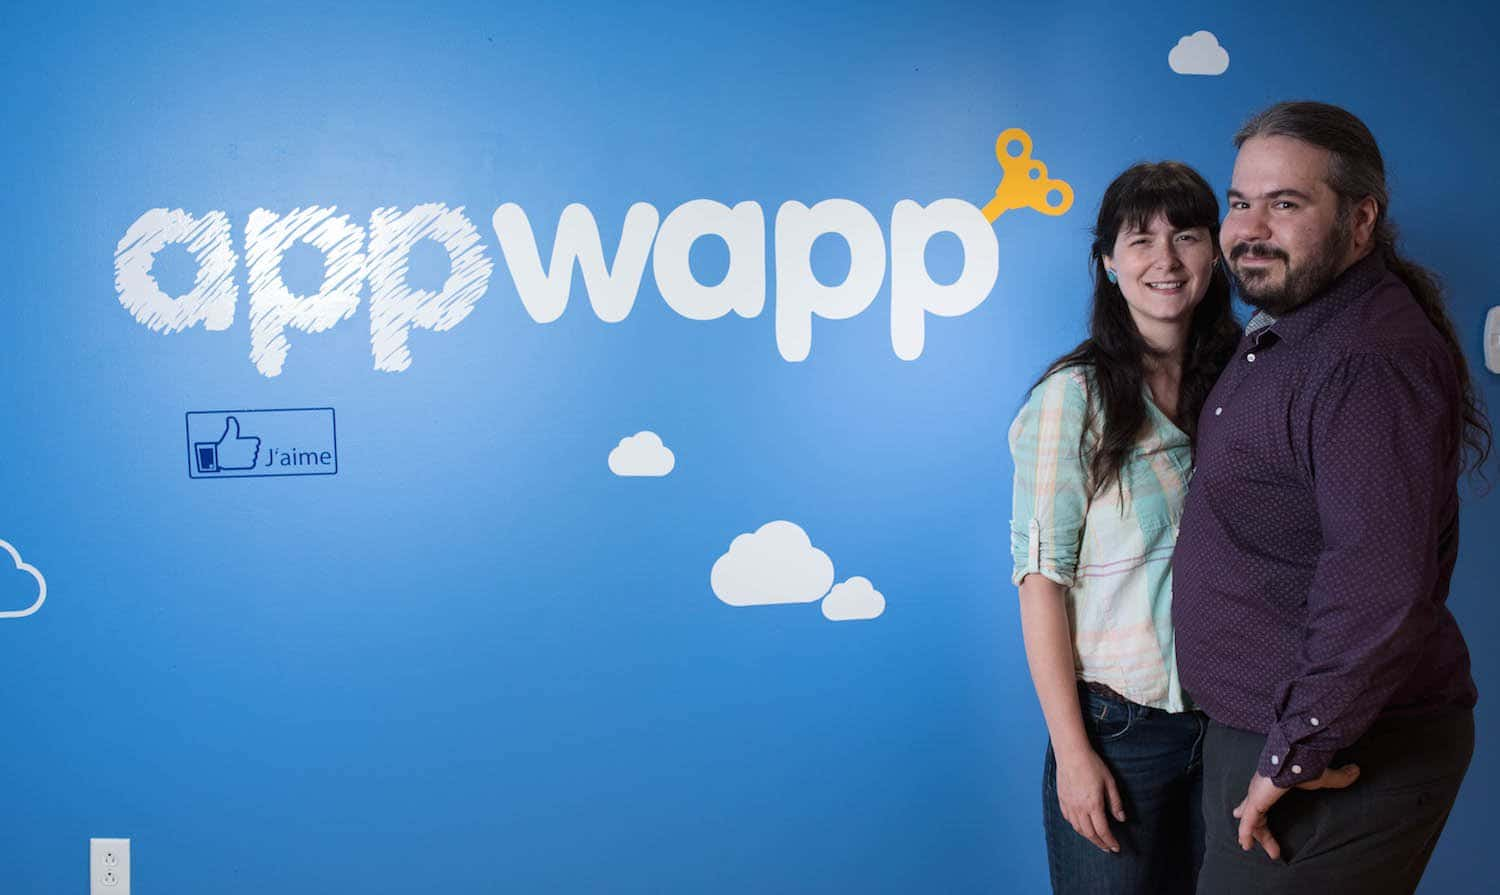 Jean-Rene and Sabrina from Appwapp